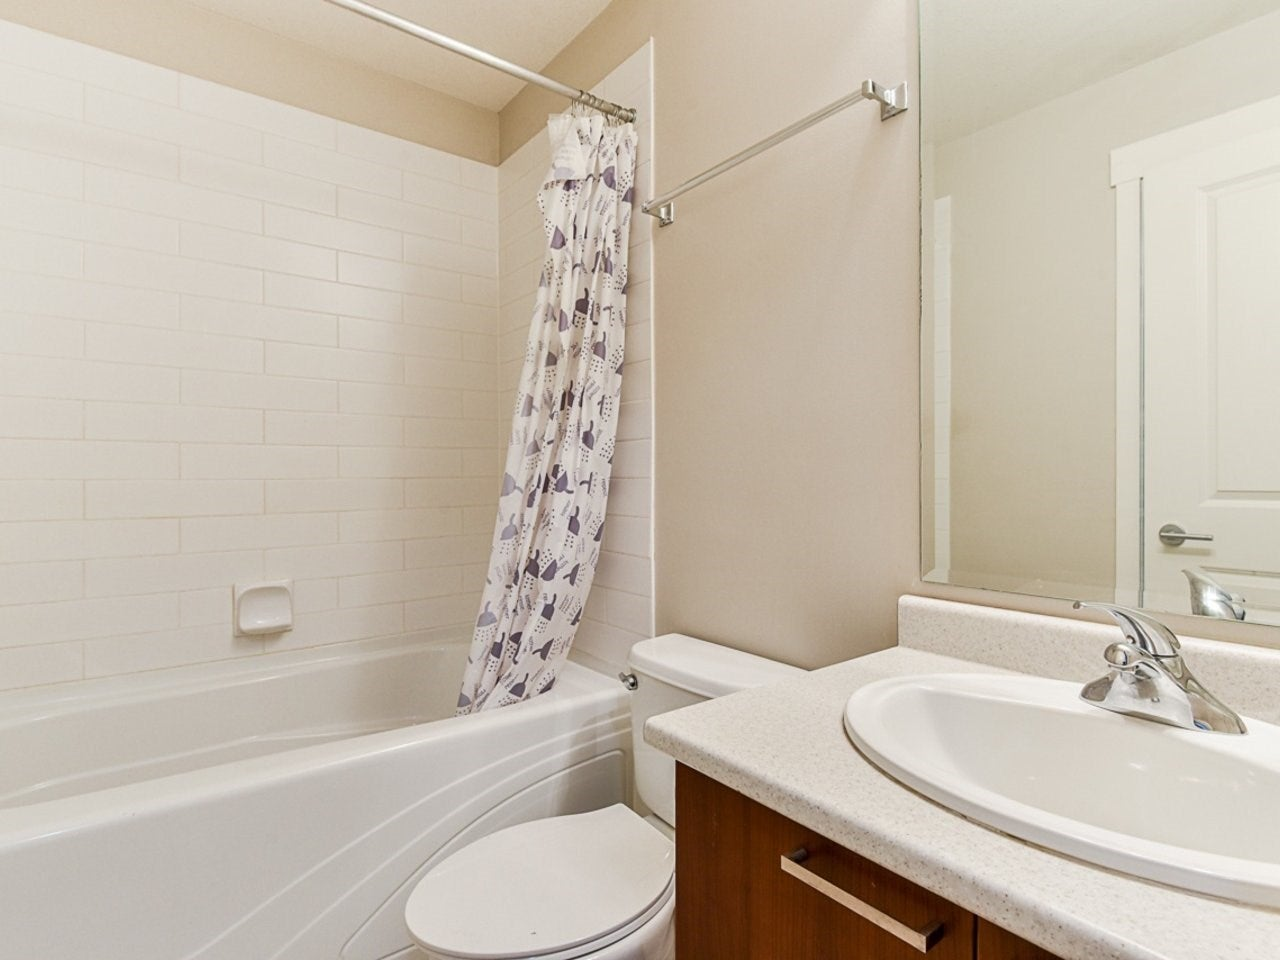 329 13321 102A AVENUE - Whalley Apartment/Condo for sale, 1 Bedroom (R2508611) - #15